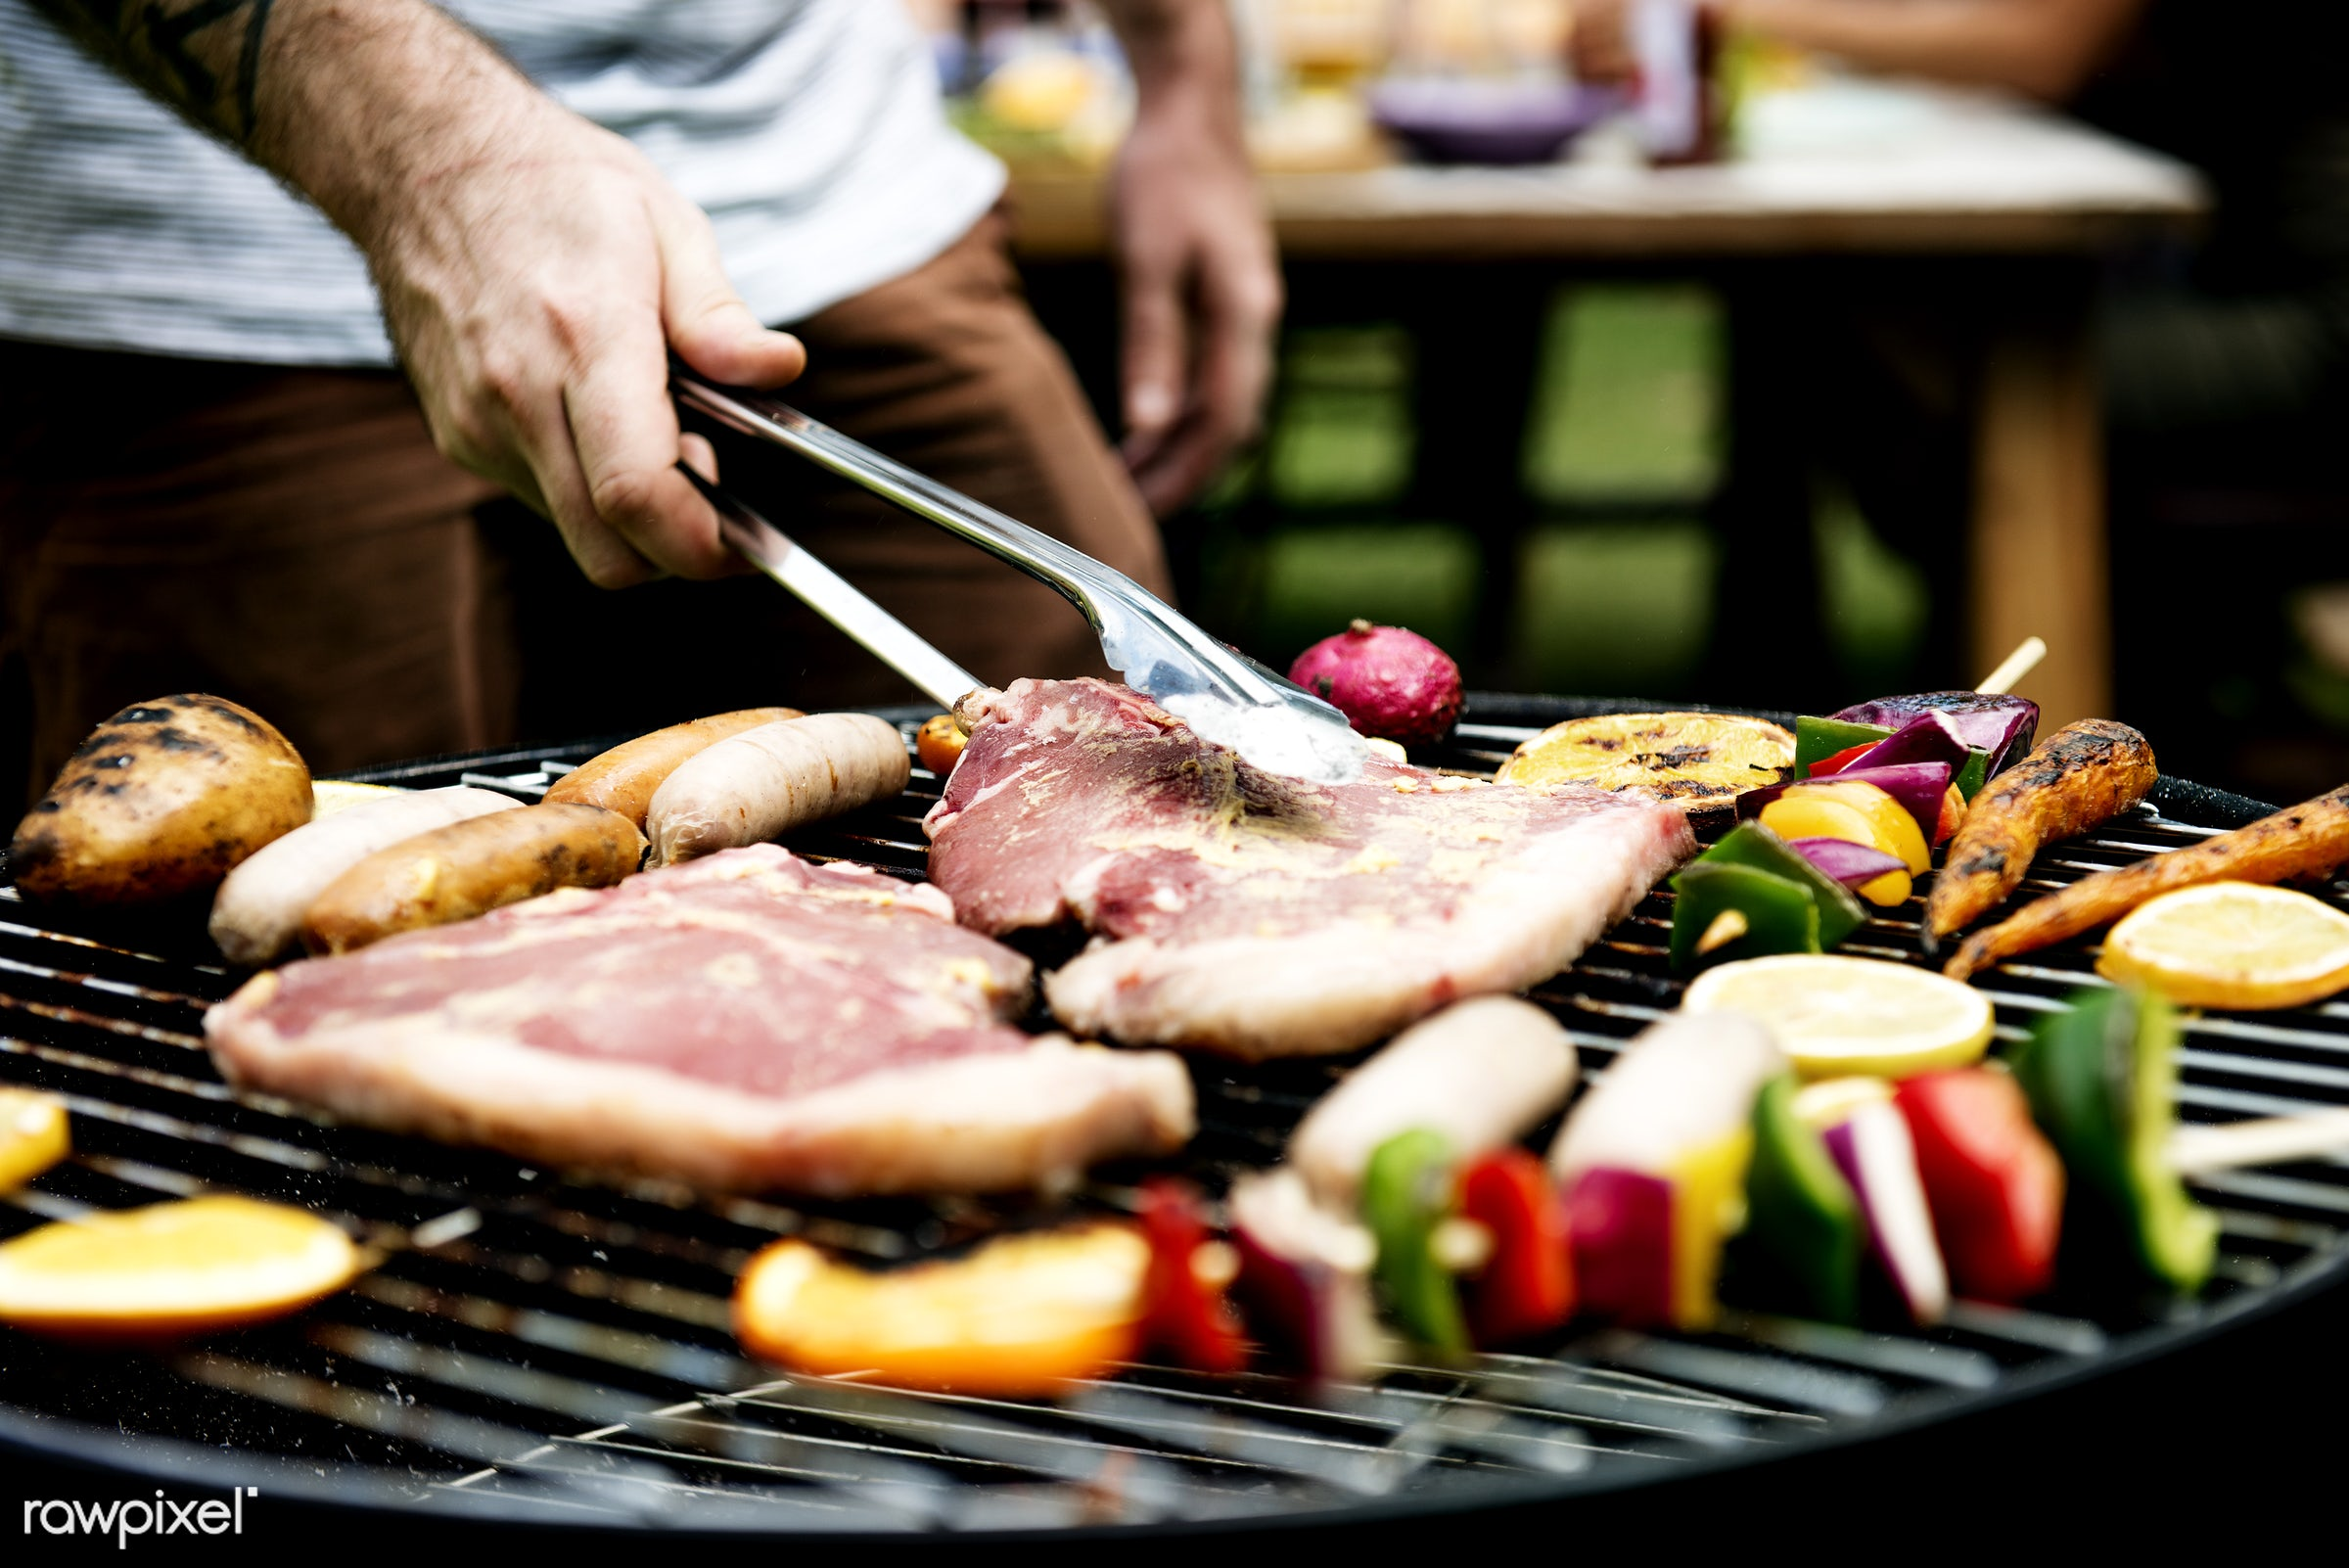 grill, yard, diverse, steaks, homemade, party, people, together, hands, cooking, meats, bbq, activity, meal, park, grass,...